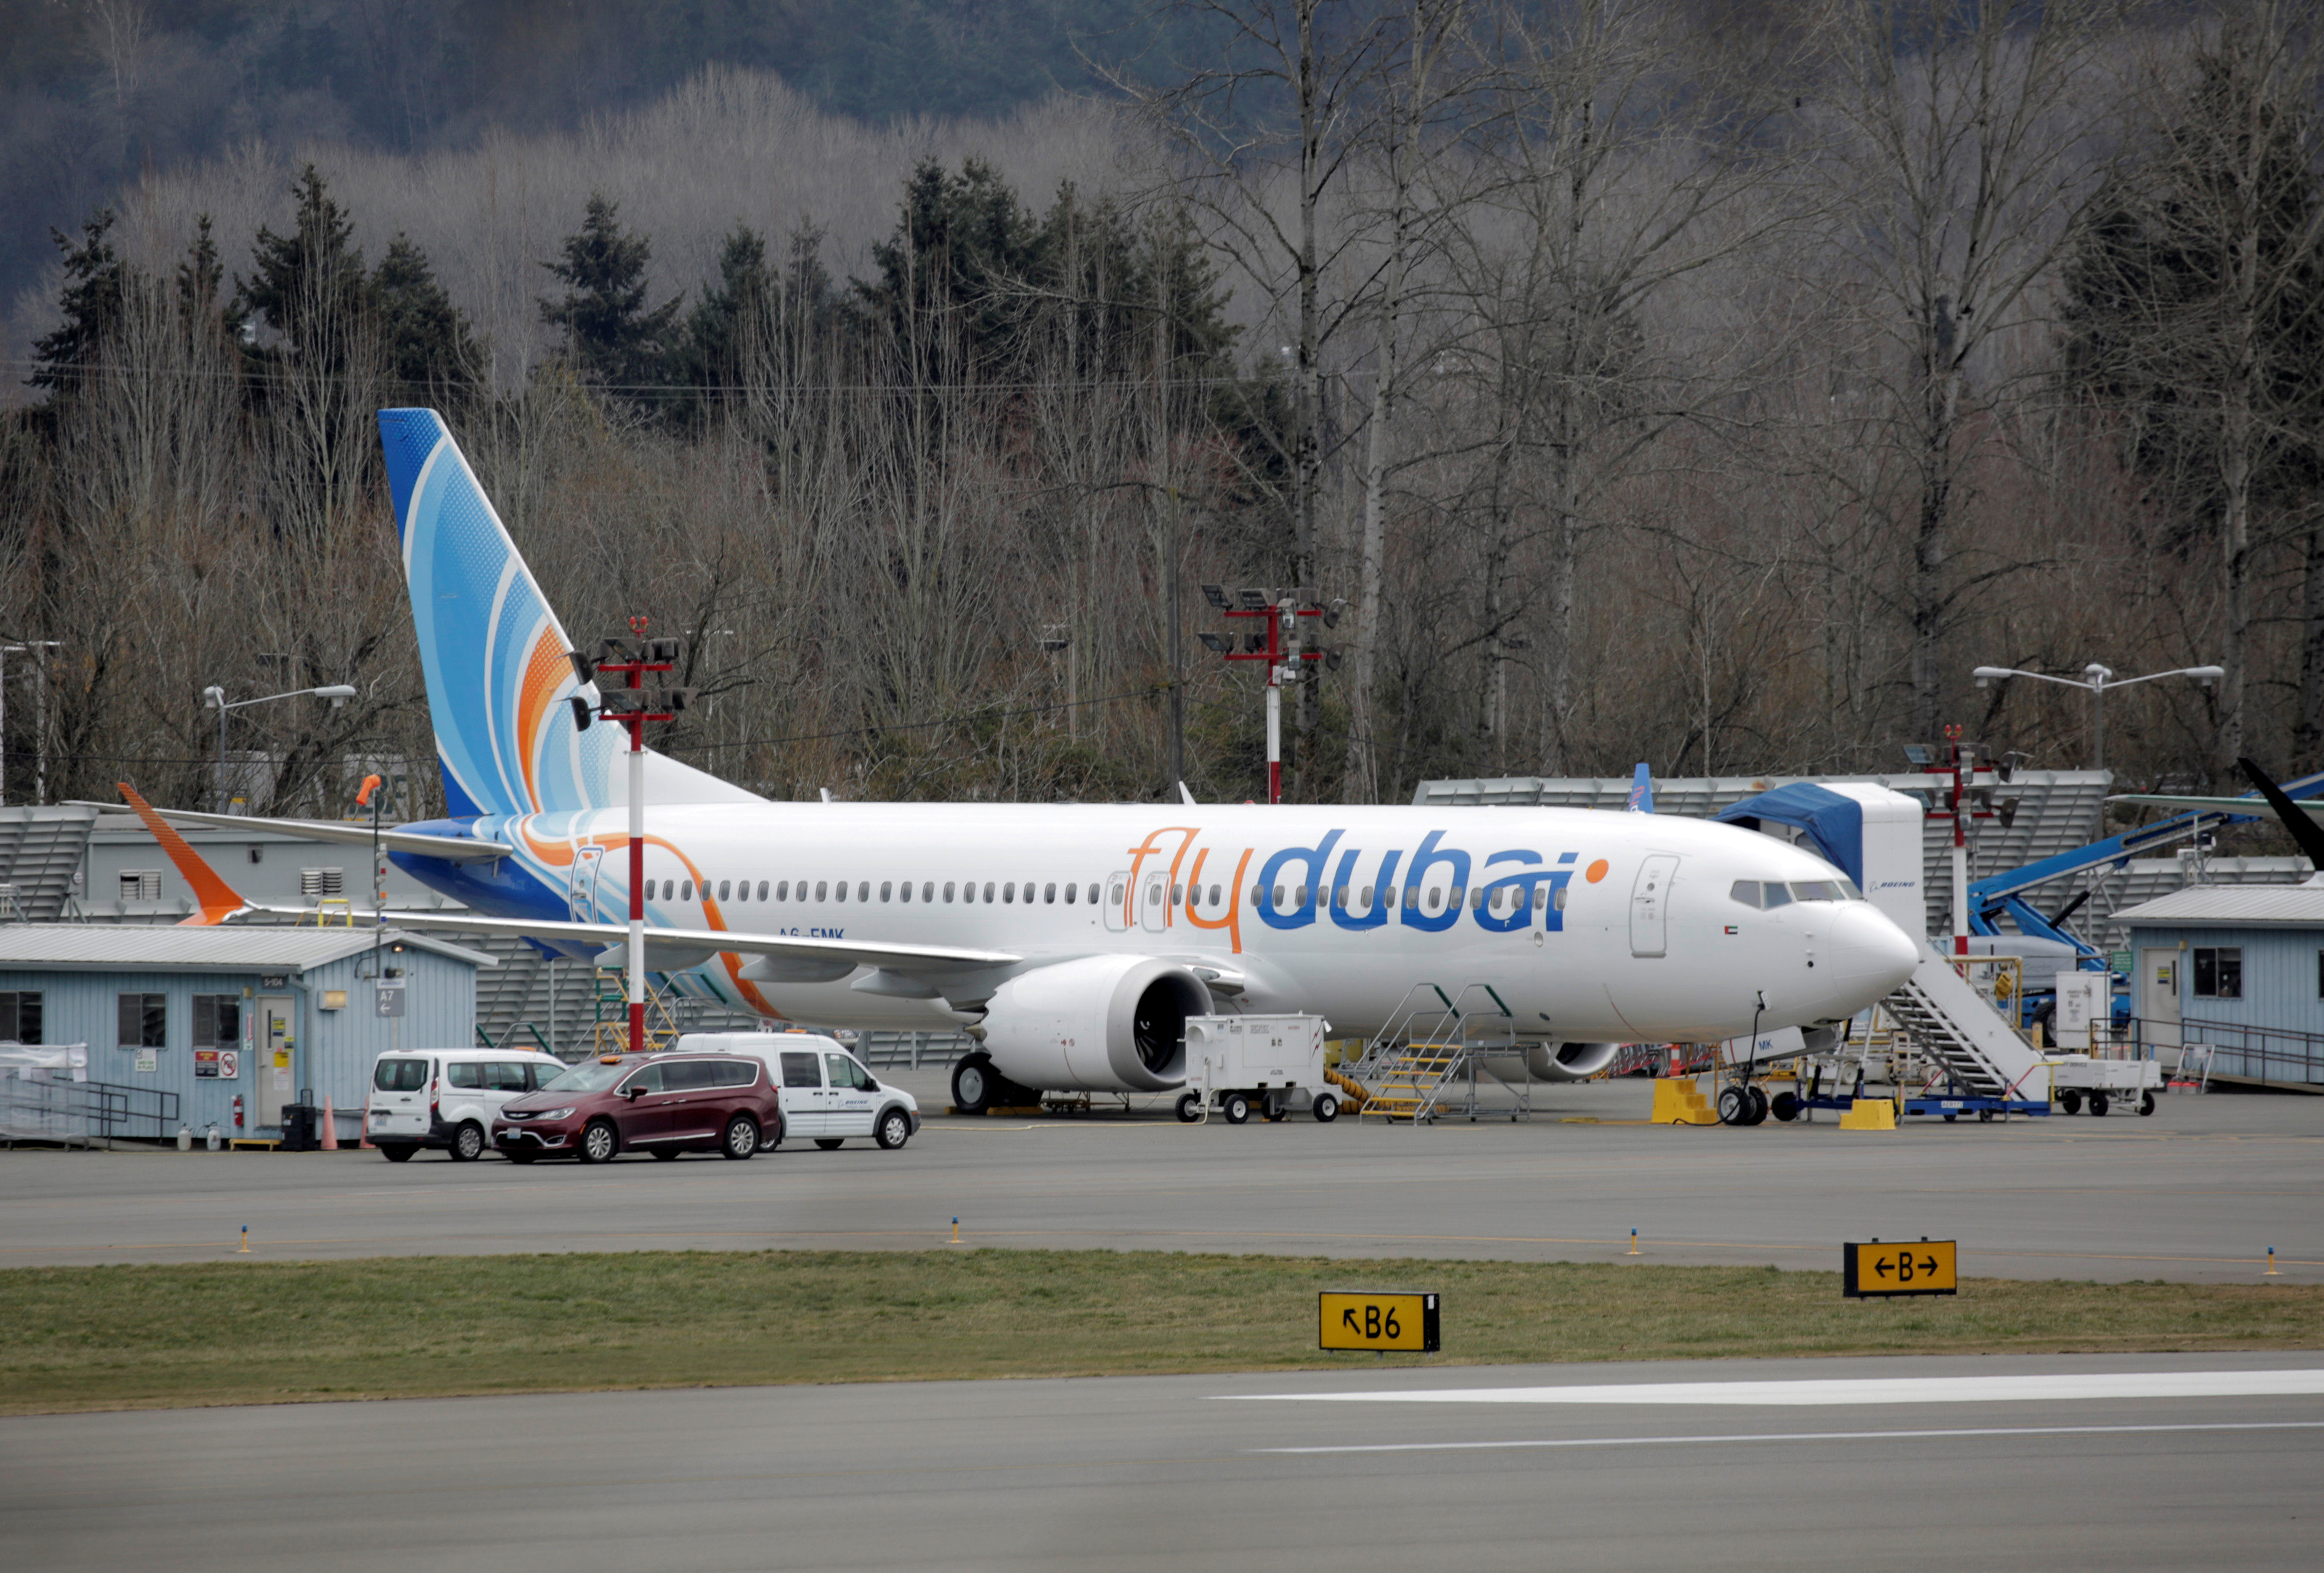 A Boeing 737 MAX aircraft bearing the logo of flydubai is parked at a Boeing production facility in Renton, Washington, U.S. March 11, 2019. REUTERS/David Ryder/File Photo